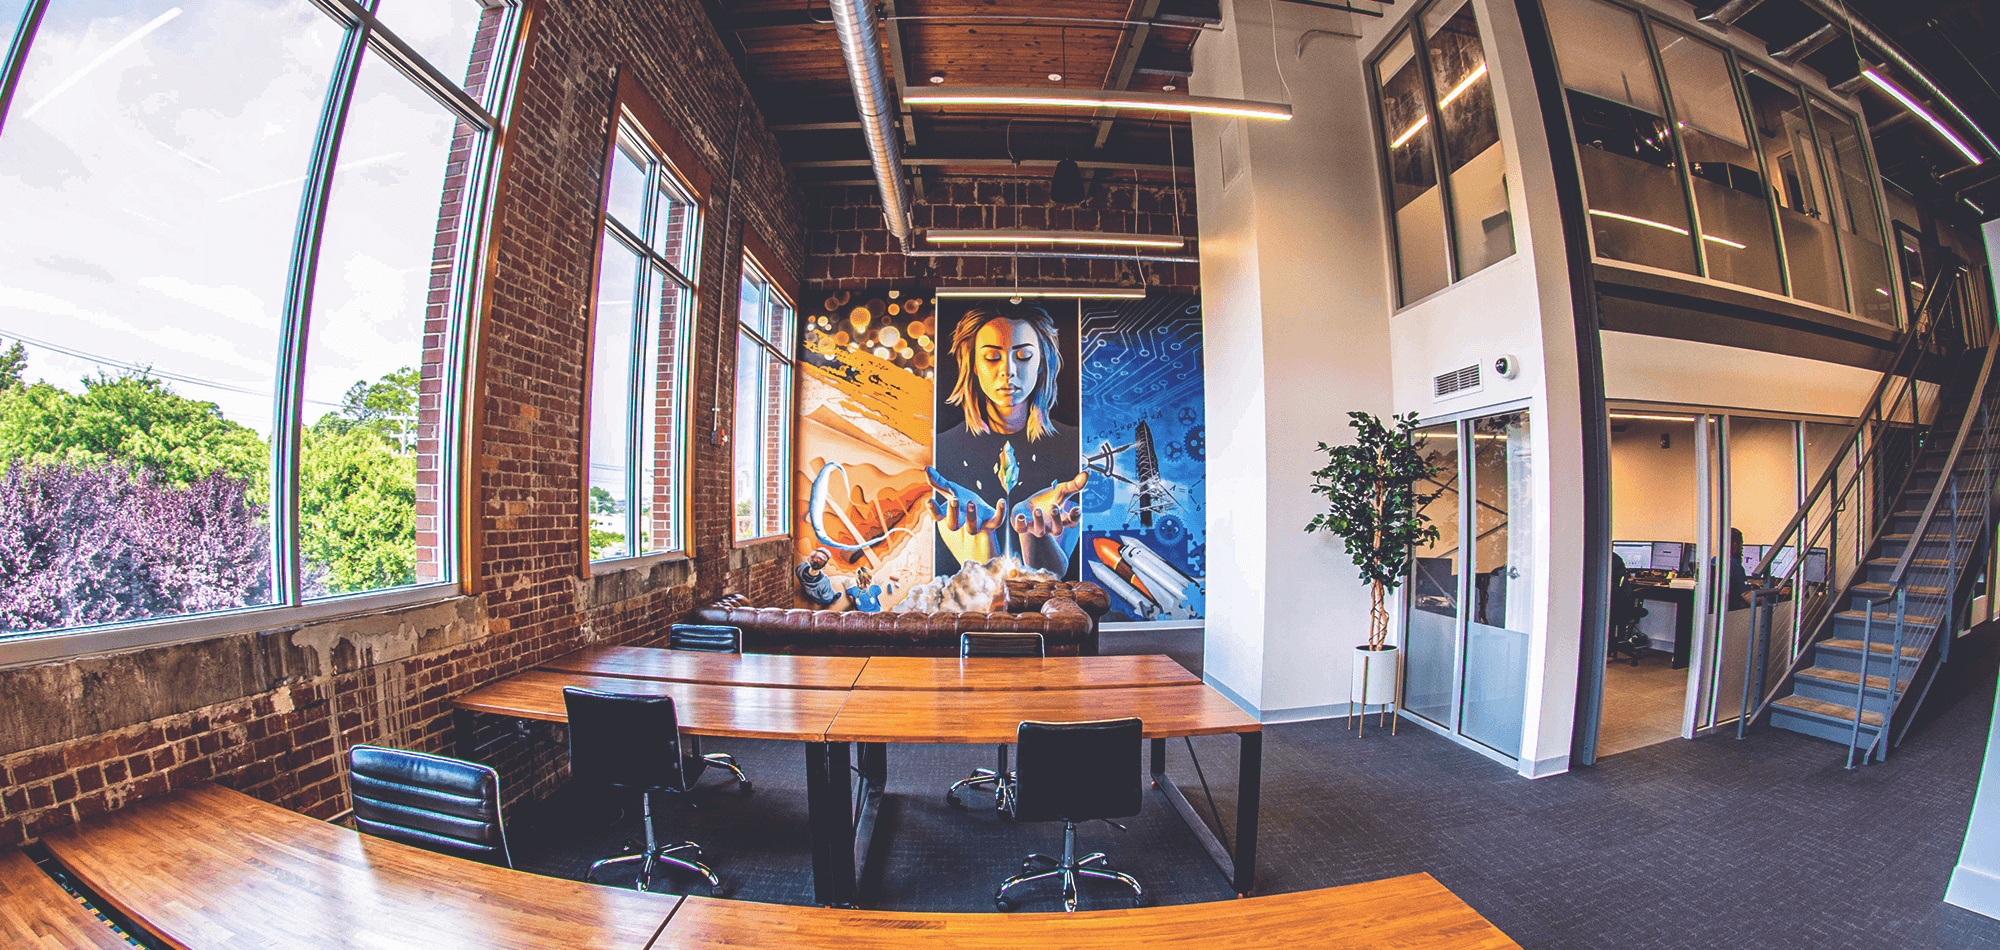 Coworking-space-with-dedicated-desks-and-a-unique-mural-to-spark-creativity